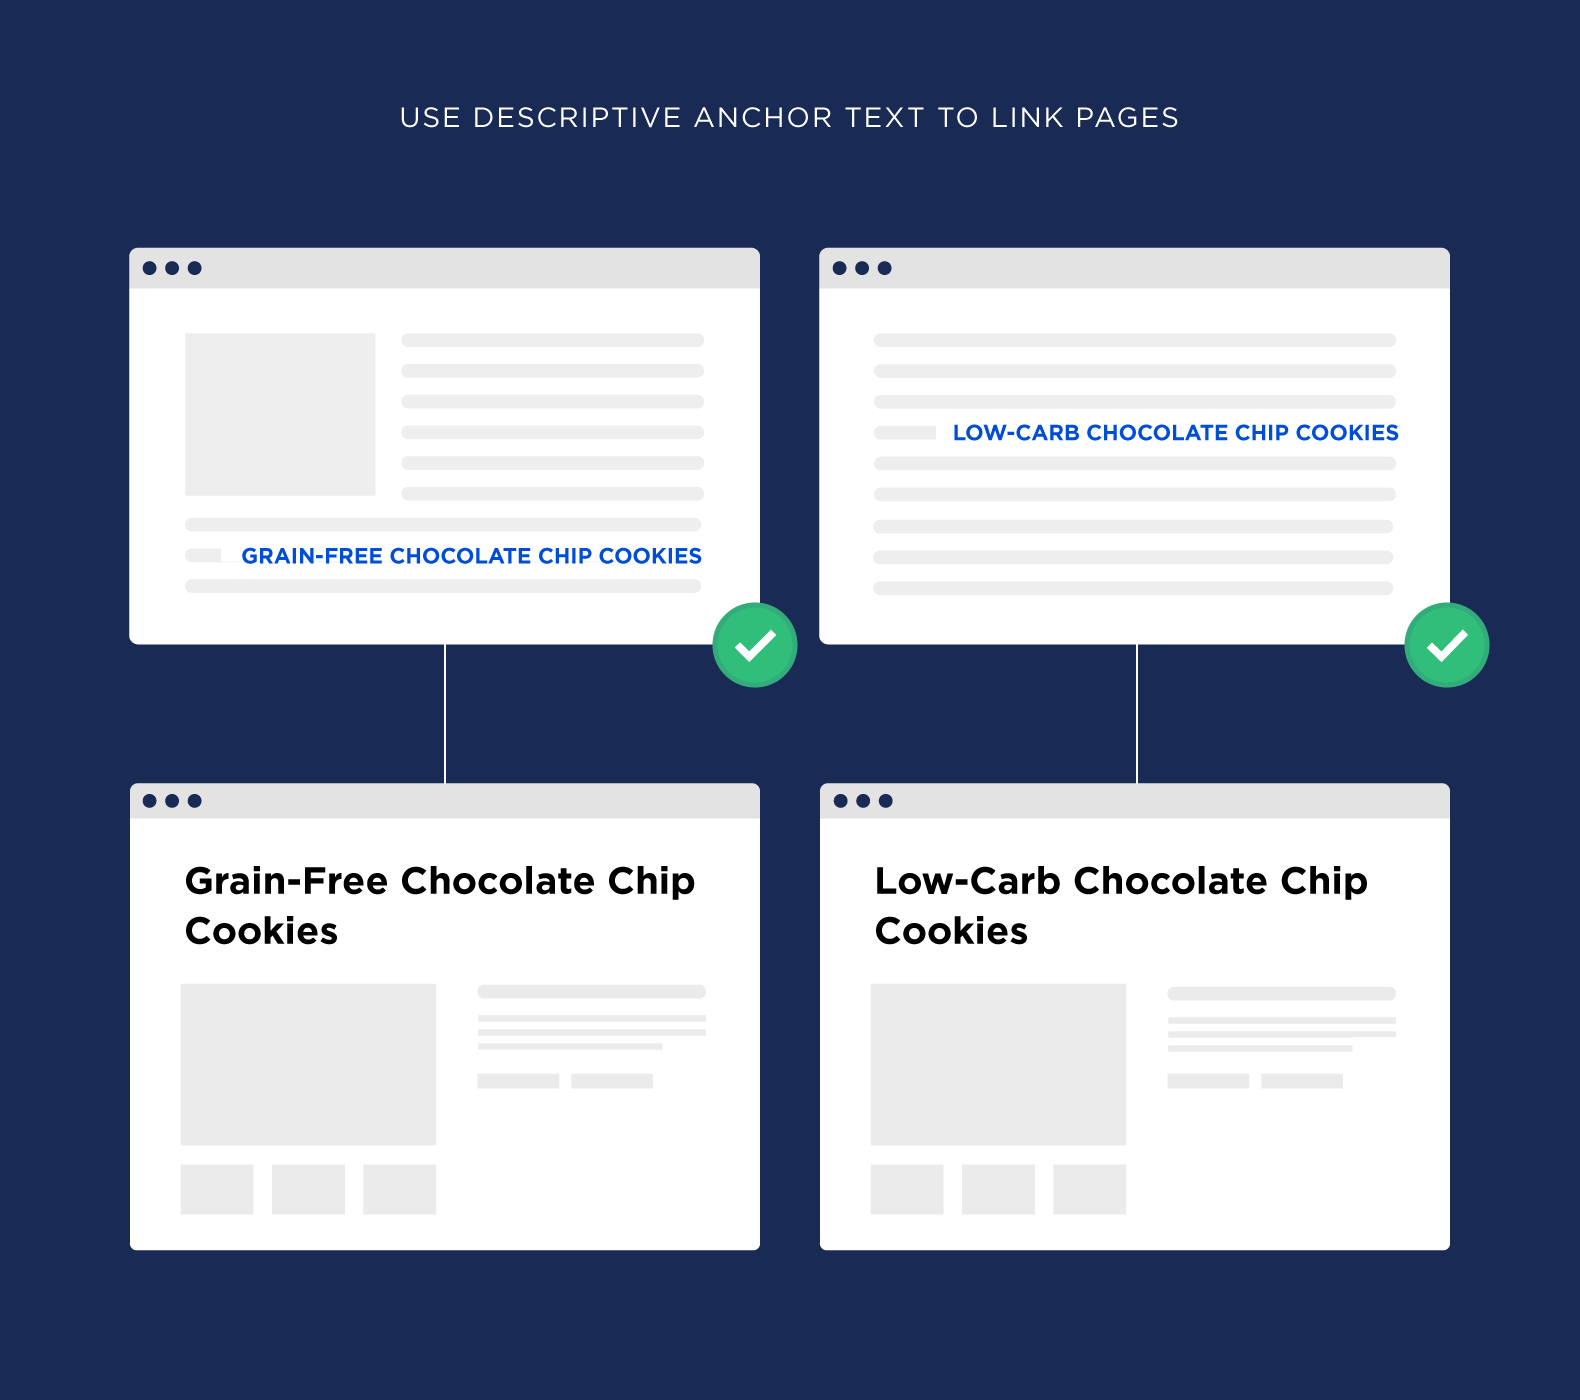 Use descriptive anchor text to link pages